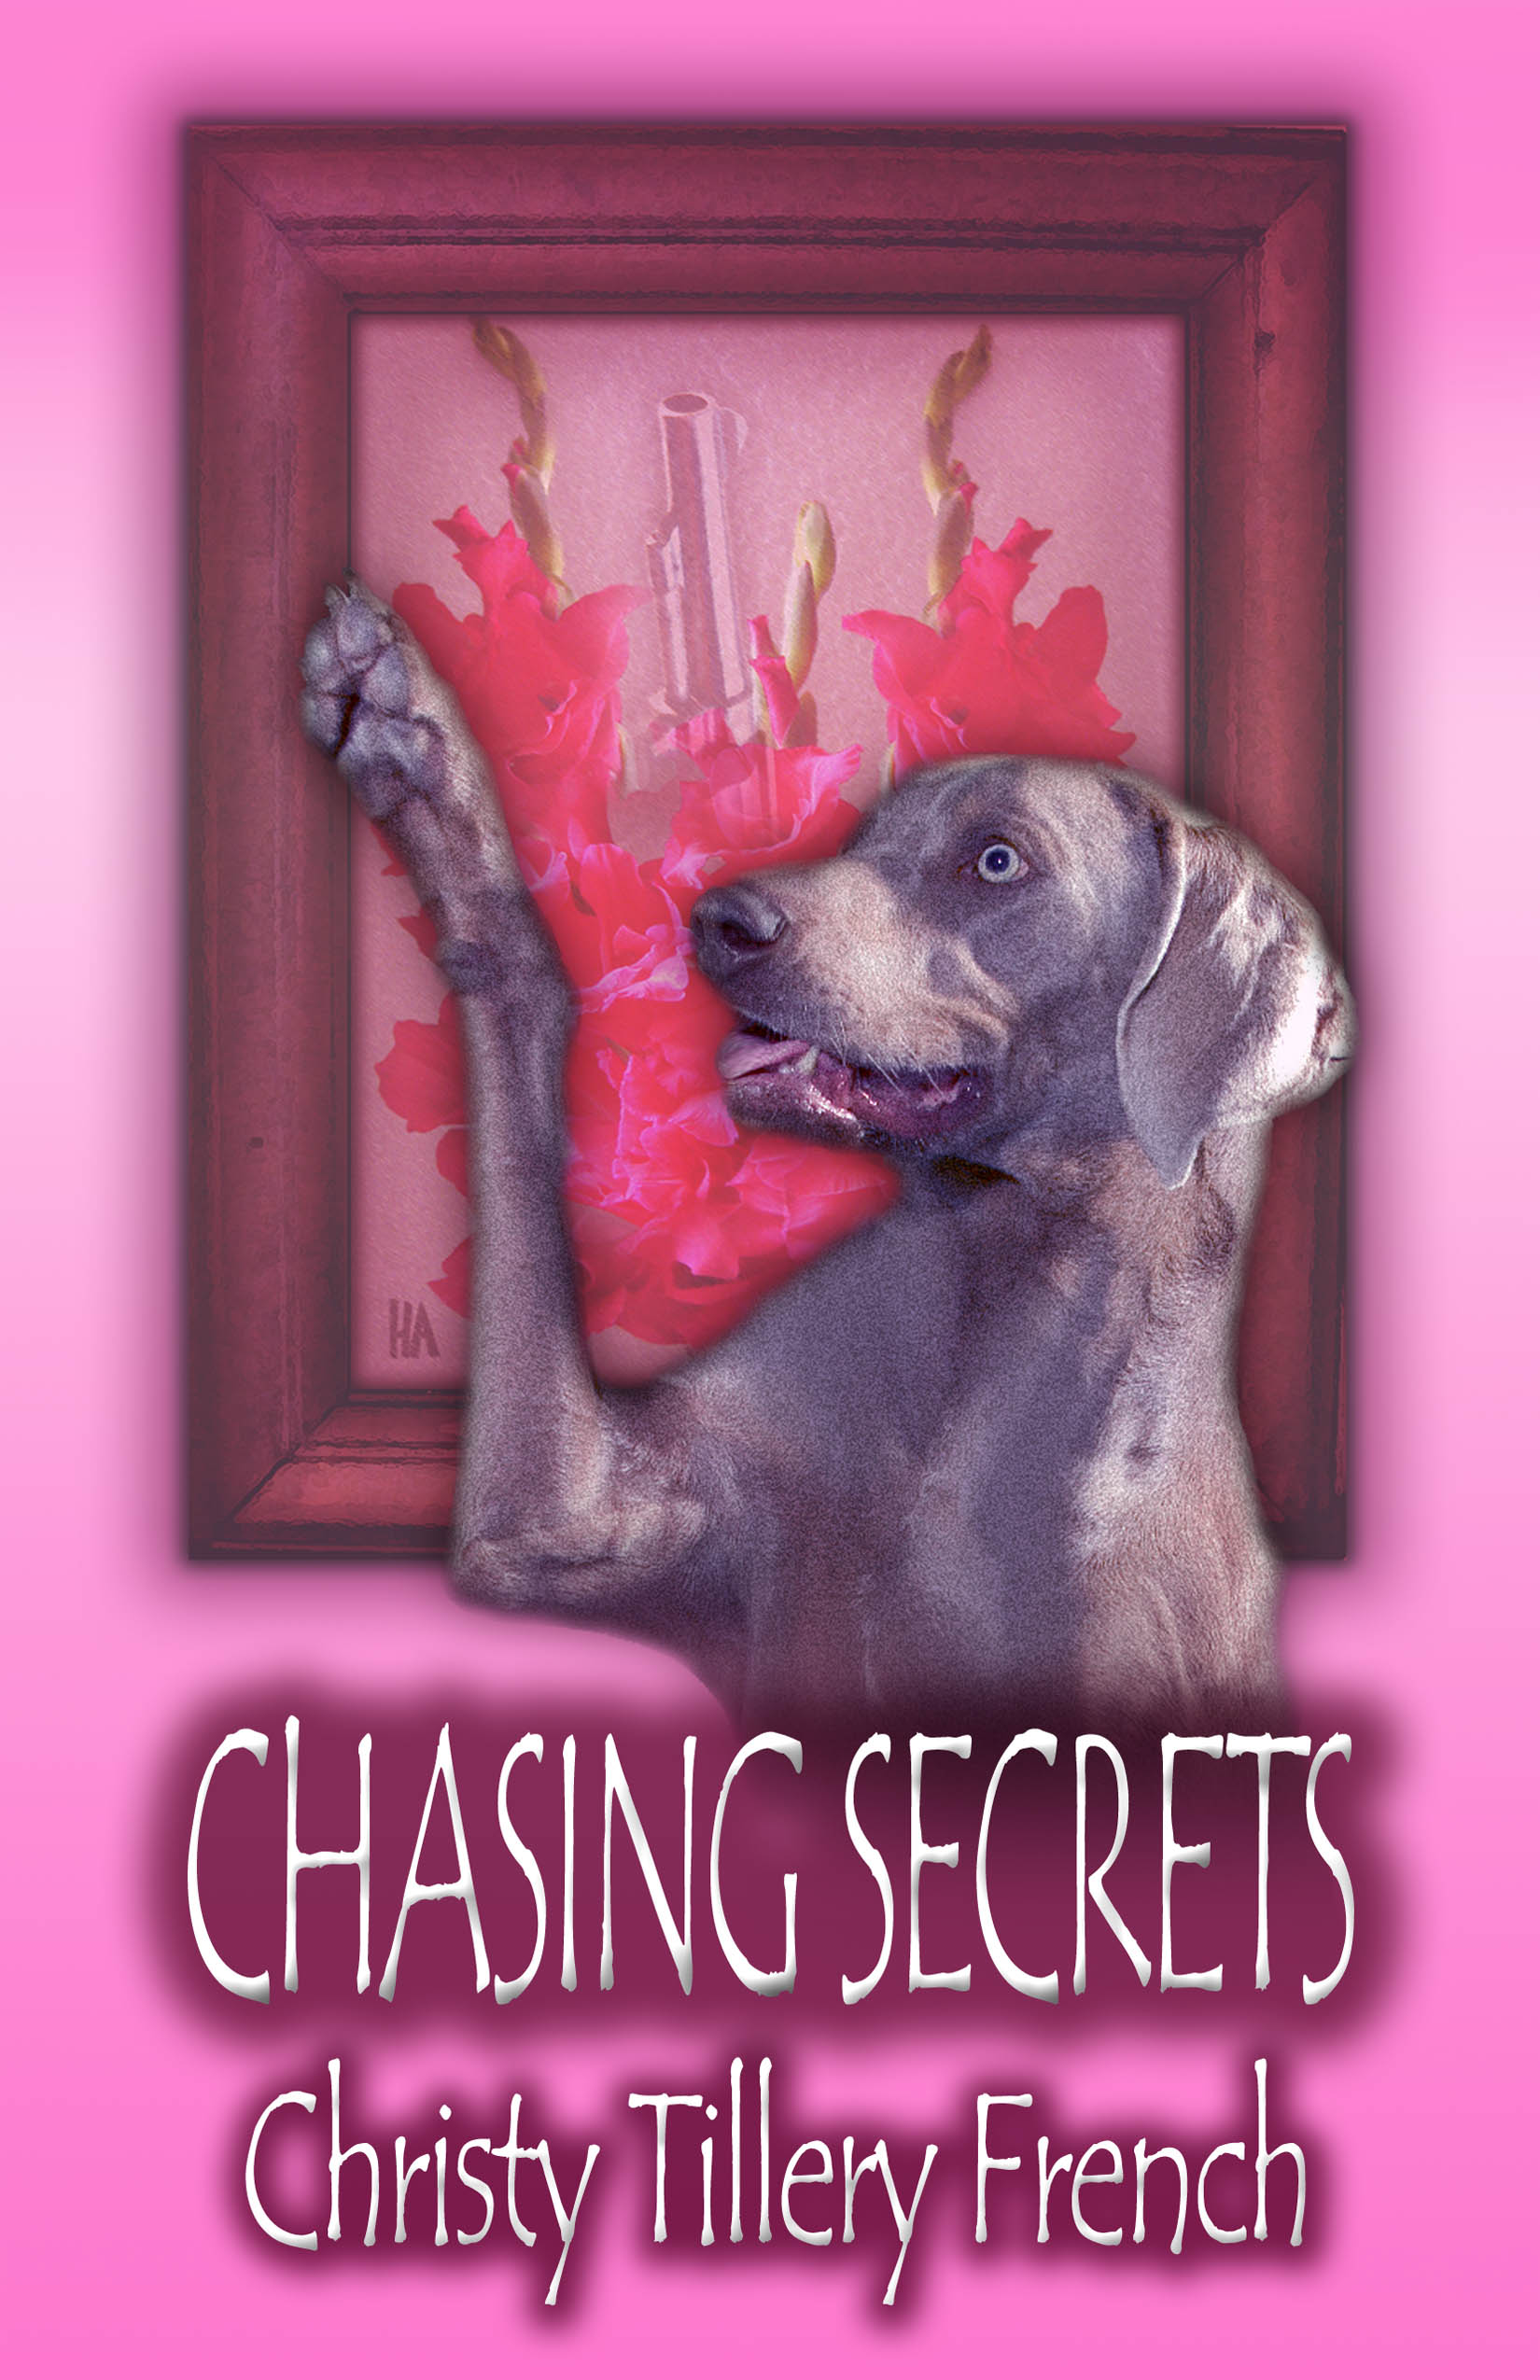 Chasing Secrets by Christy Tillery French